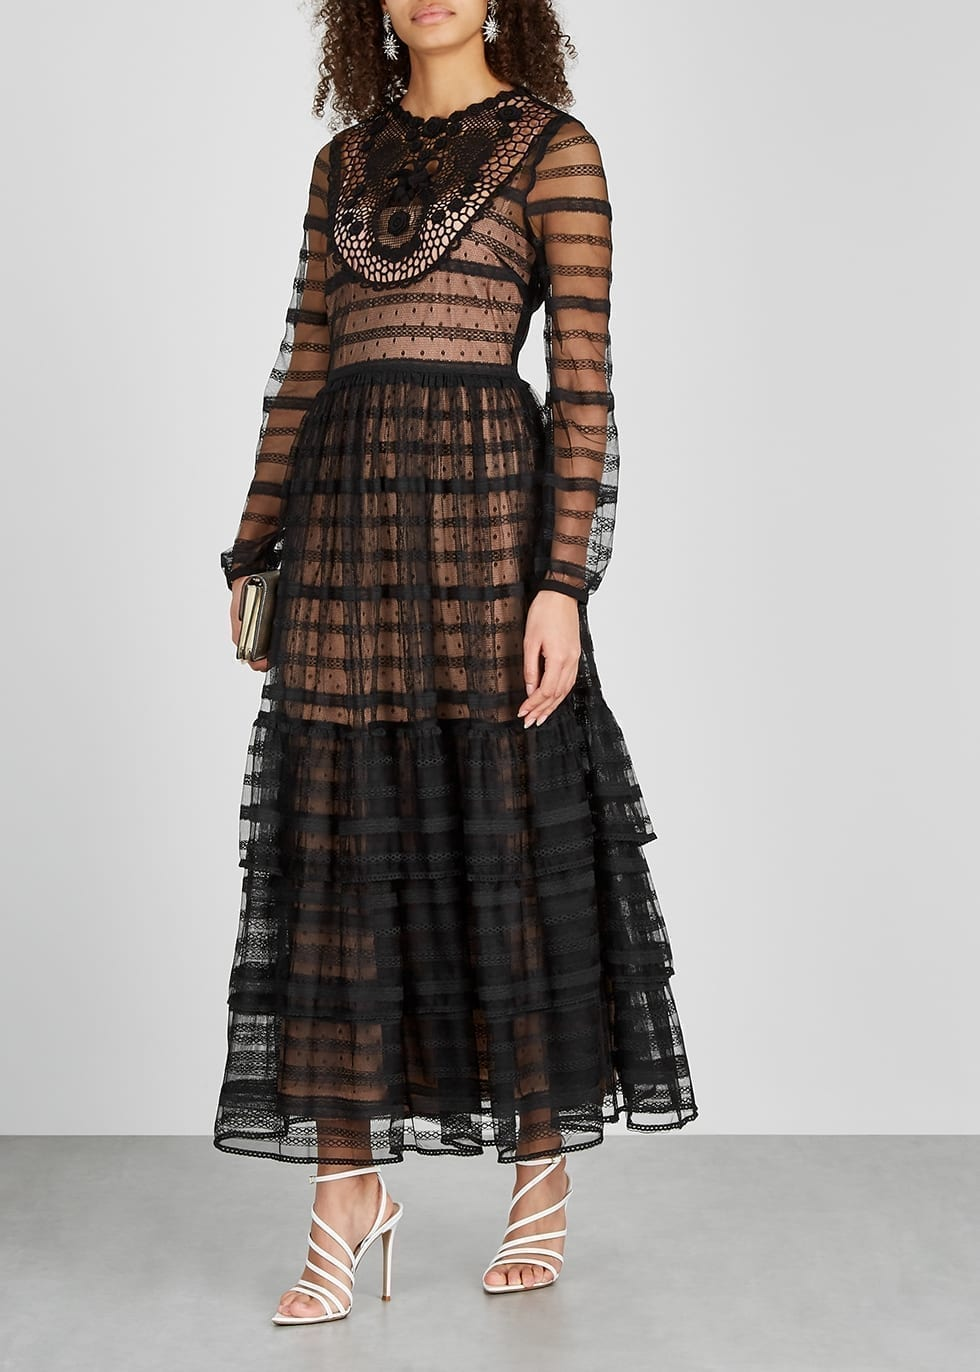 RED VALENTINO Black Crochet-trimmed Lace Maxi Dress